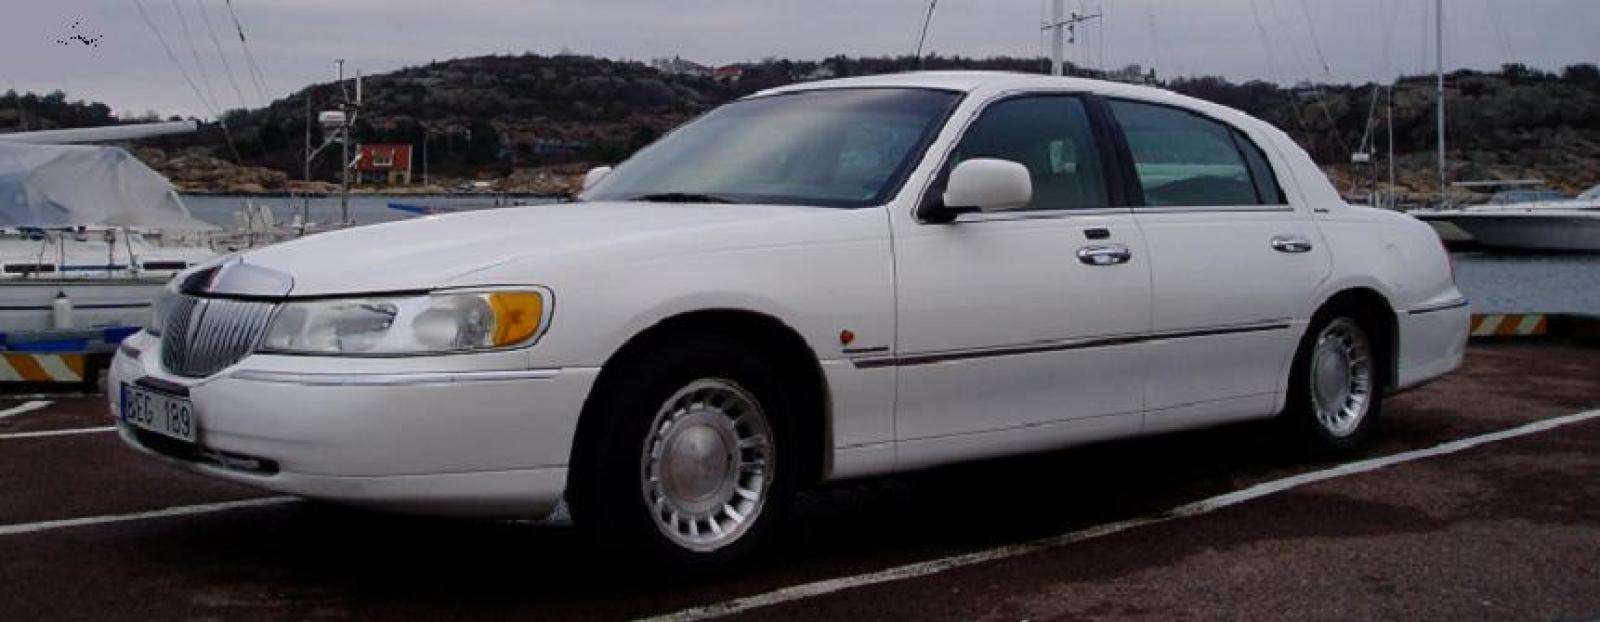 2001 Lincoln Town Car Information And Photos Zombiedrive